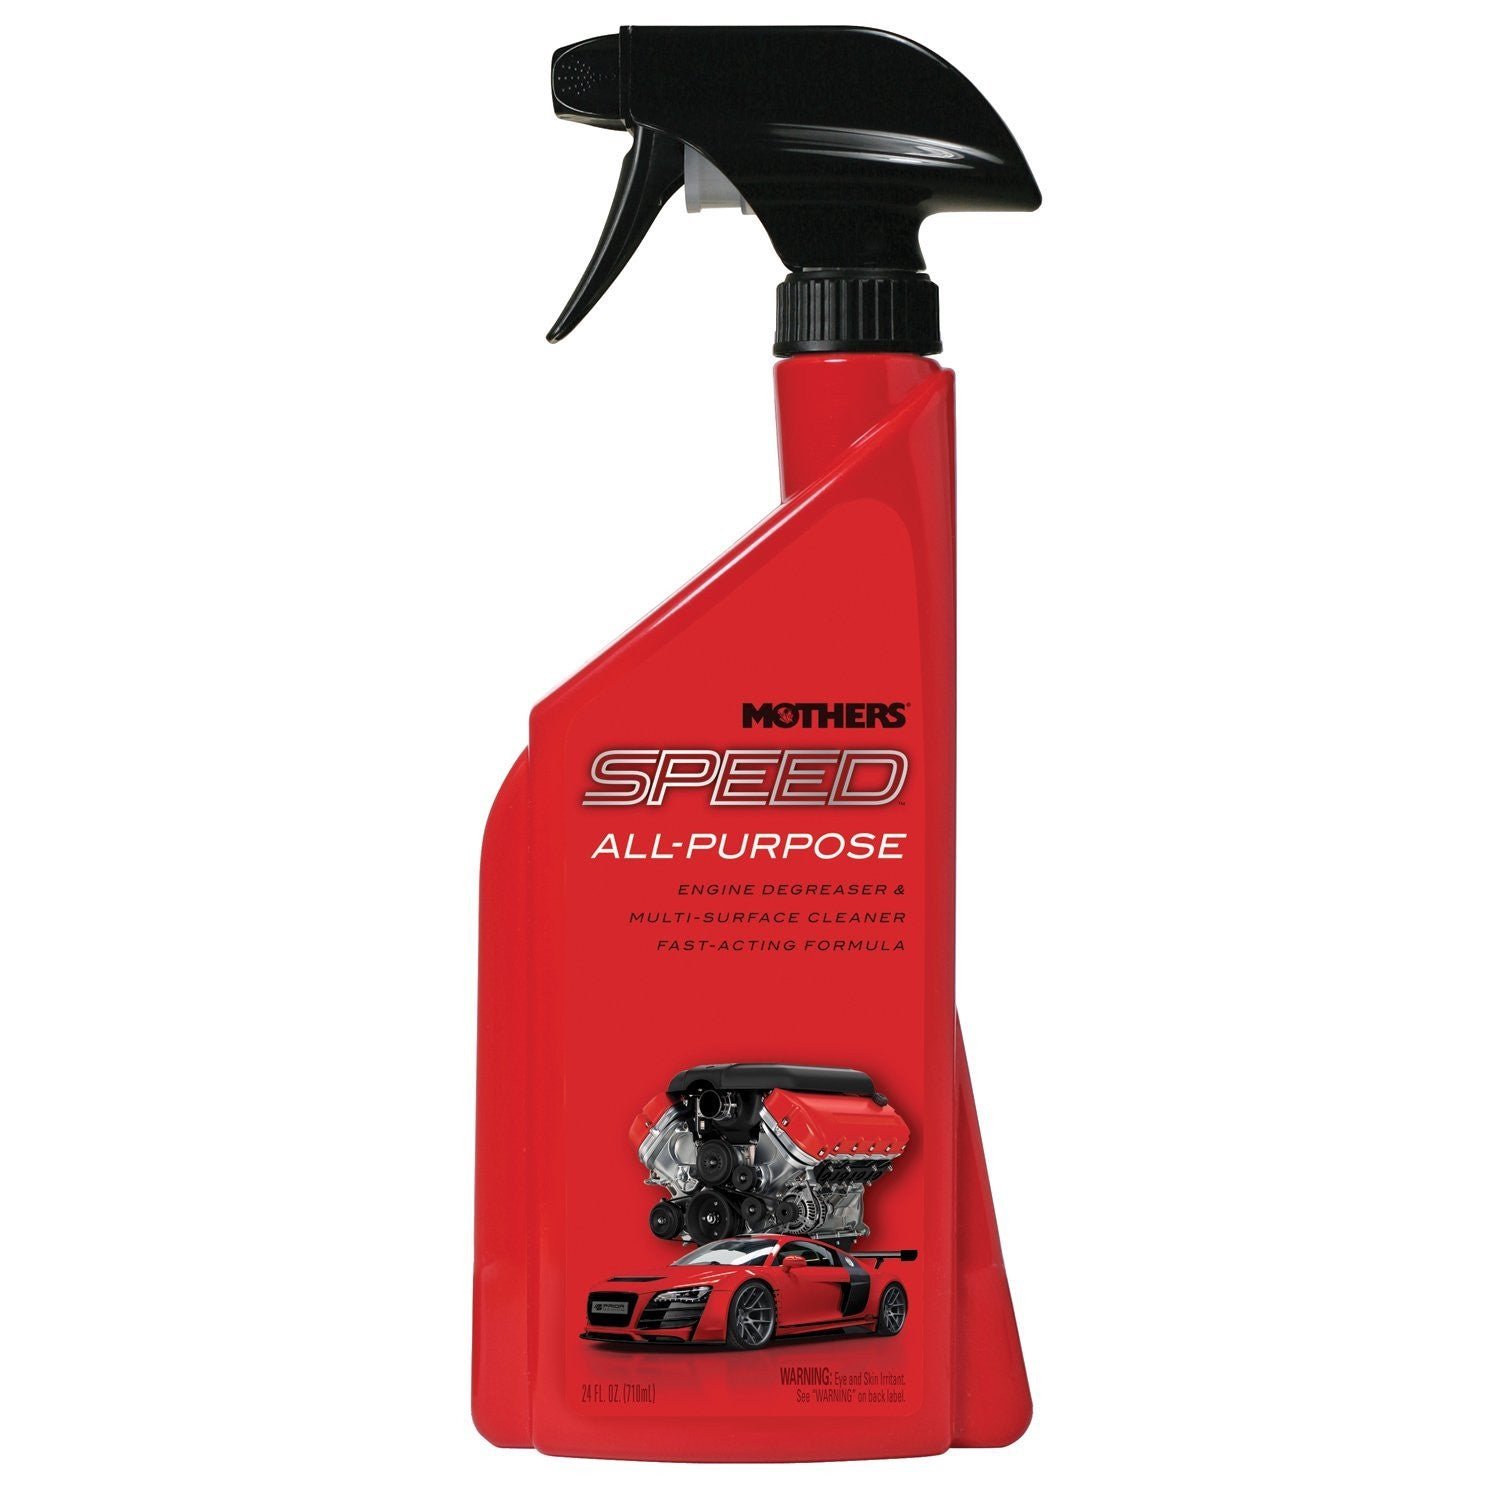 Mothers Speed All-Purpose Cleaner 24 oz.